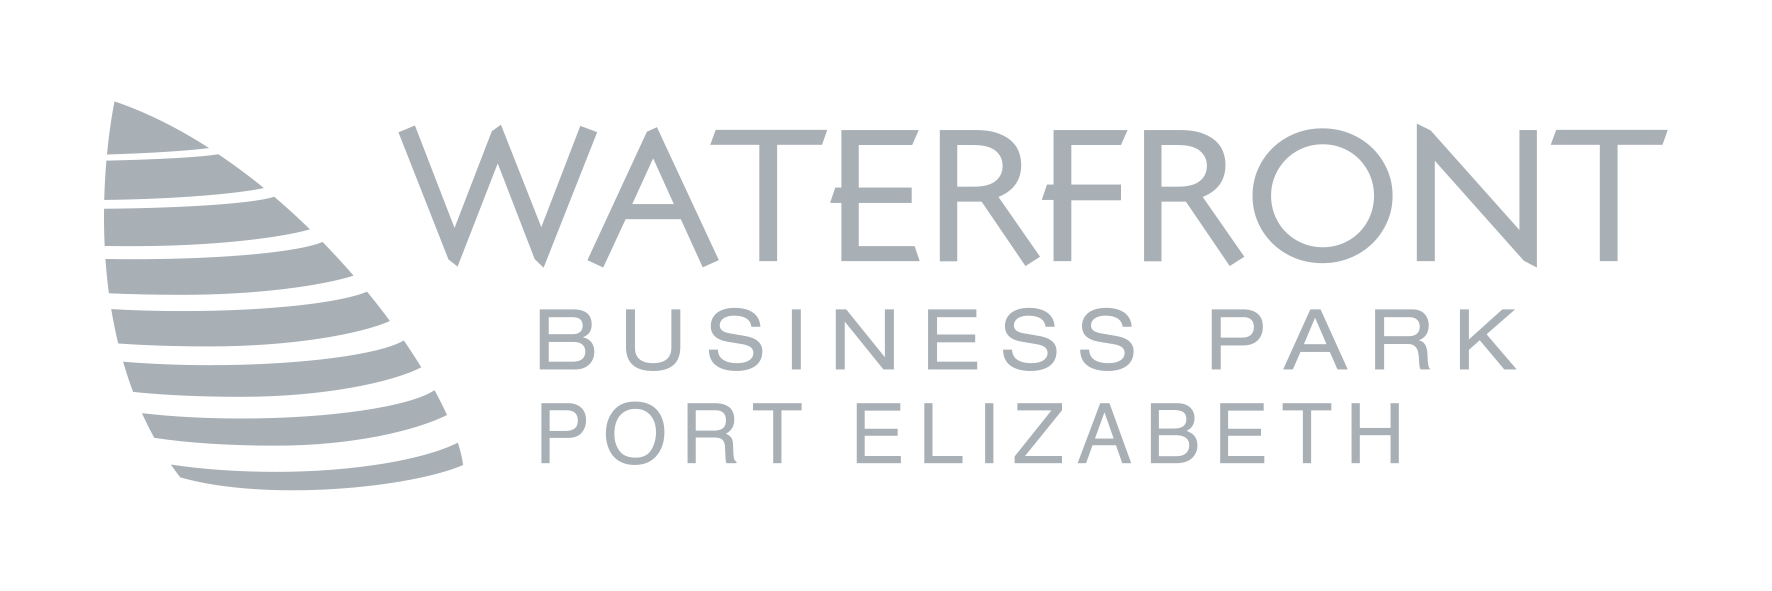 Waterfront Business Park